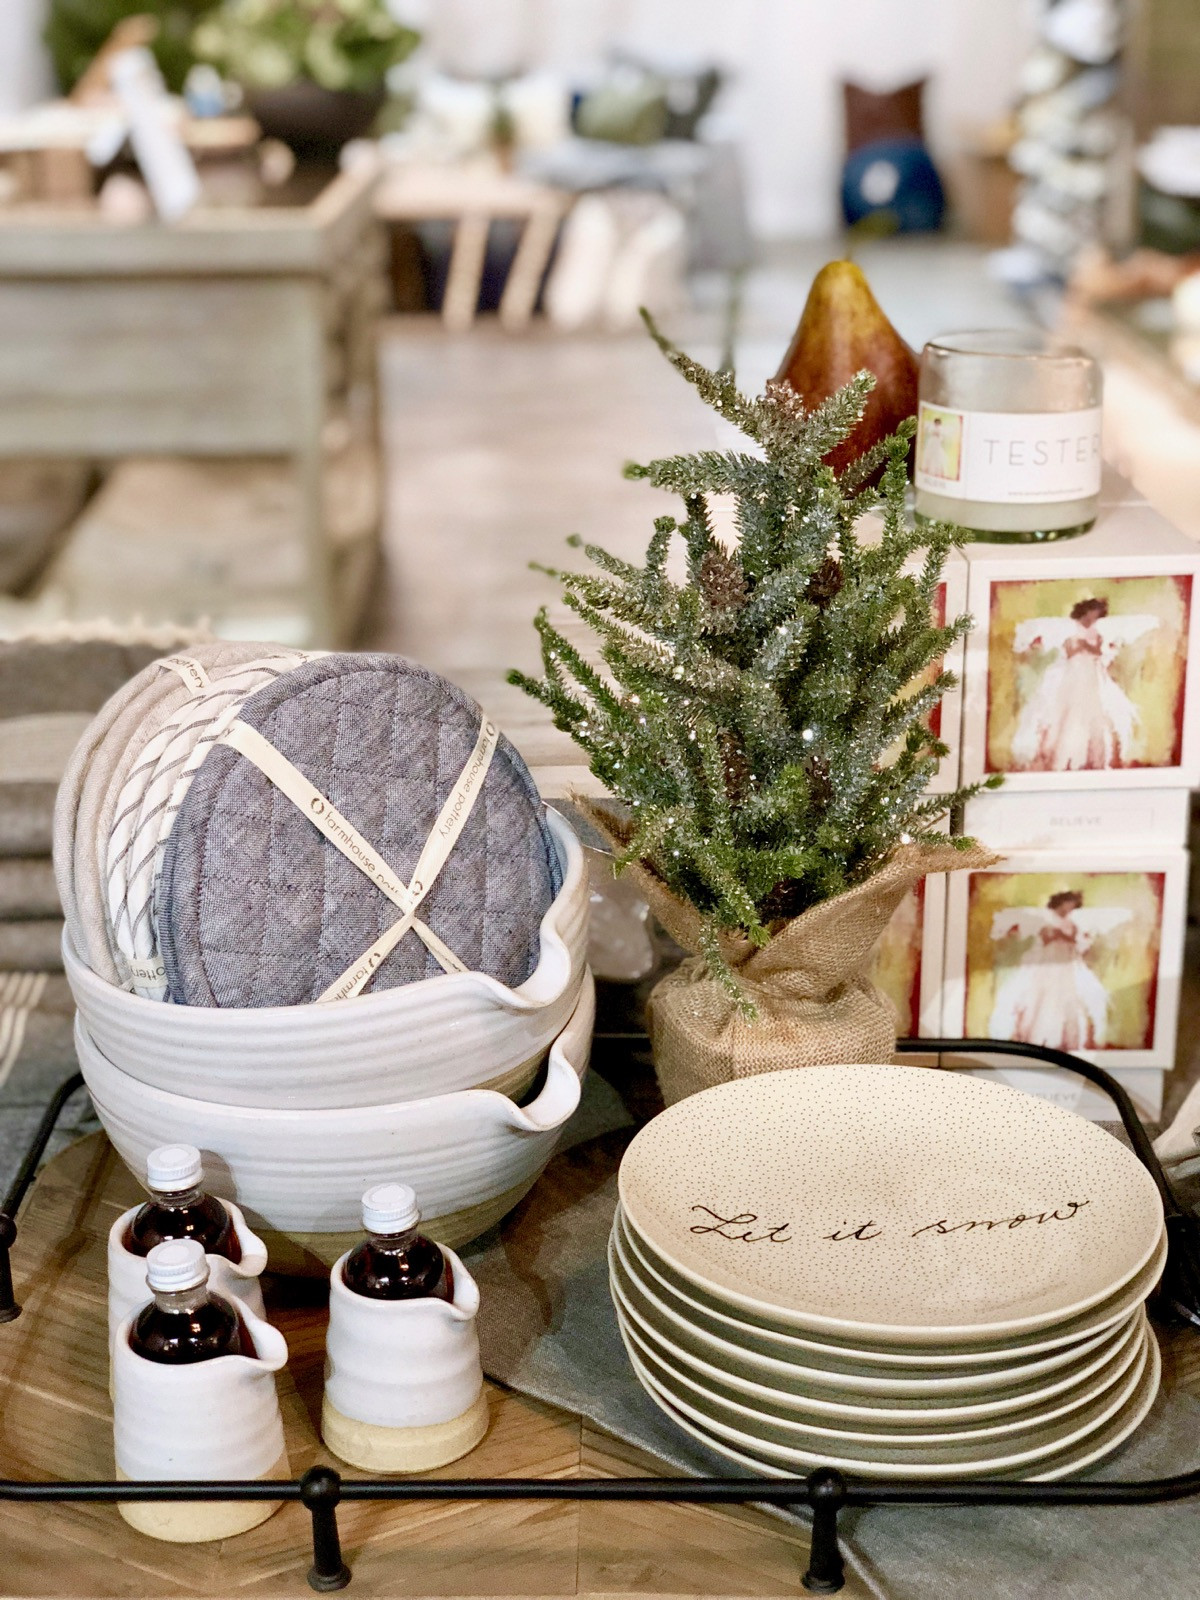 "Petite Silo Pitcher & Vermont Maple Syrup Sets {$36.00} with ""Let It Snow"" Plates {$14.00}, Anne Neilson Luxury Candle Gift Set {$54.00 }, Quilted Linen Oven Mitts {$54.00}, Glittered Tree {$34.00}"